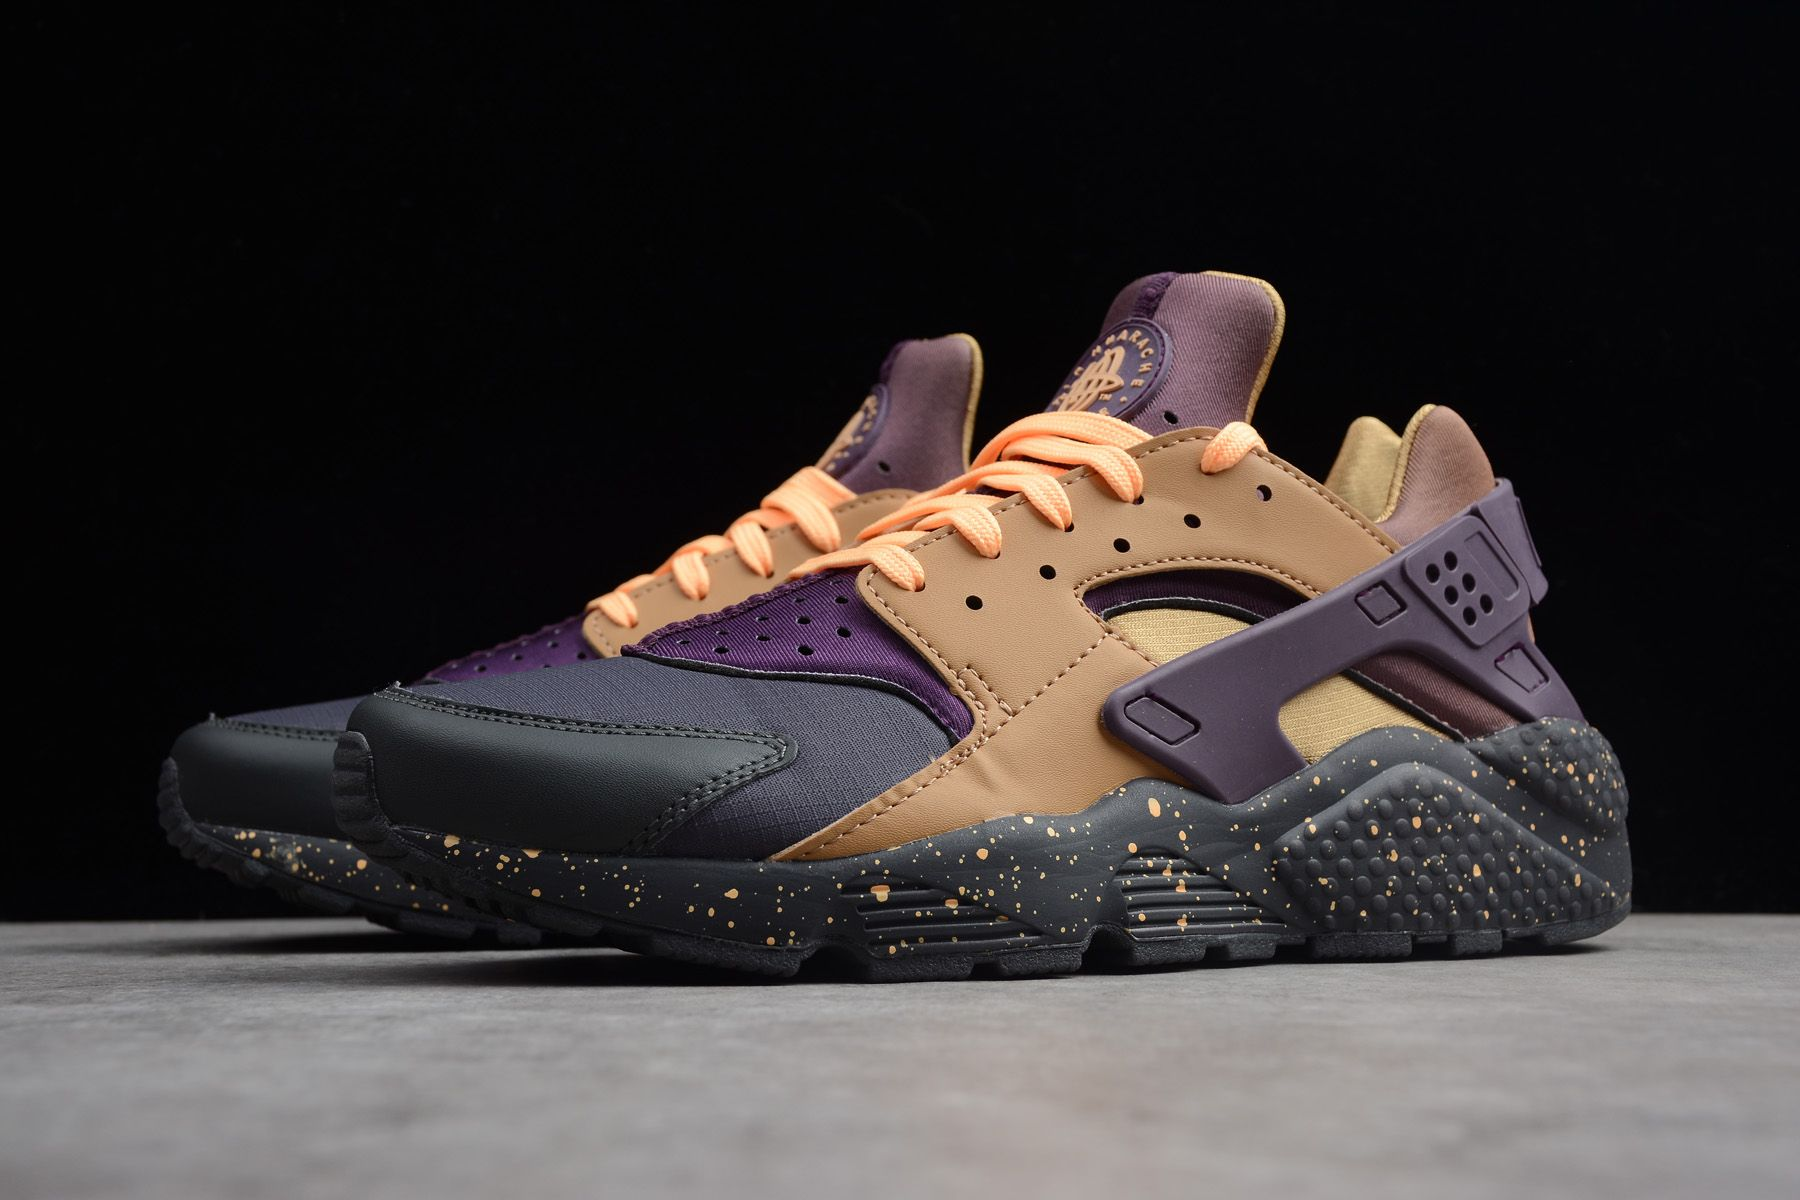 buy popular 7797e 36fc4 Nike Air Huarache Run Premium Anthracite Pro Purple Elemental Gold 704830- 012